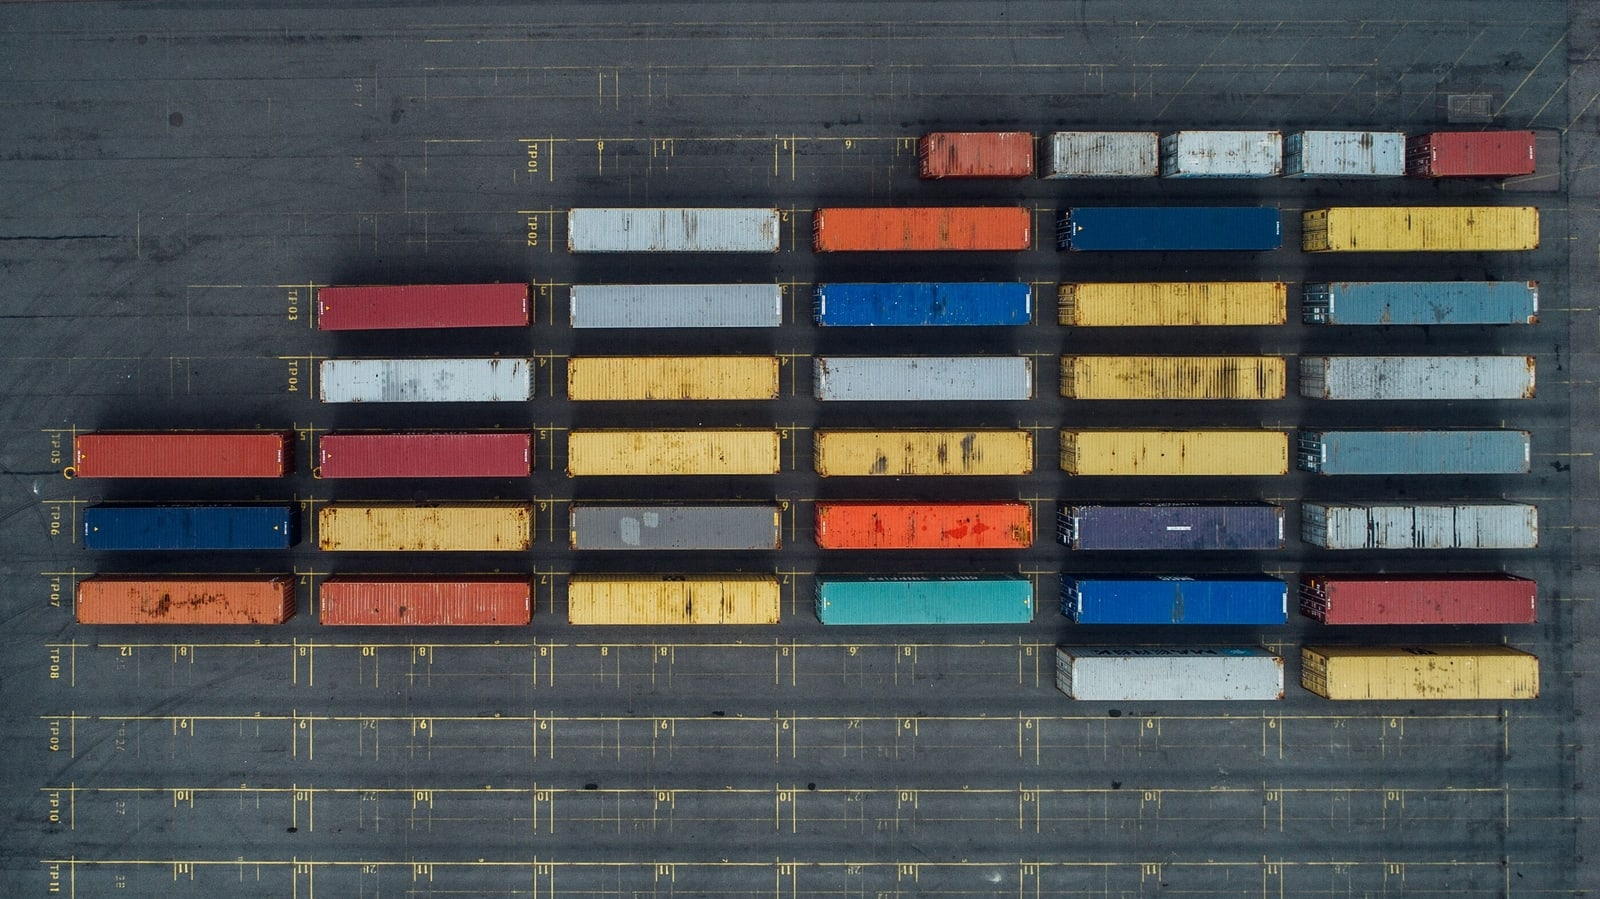 How Blockchain Technology can help to solve supply chain issues caused by COVID-19